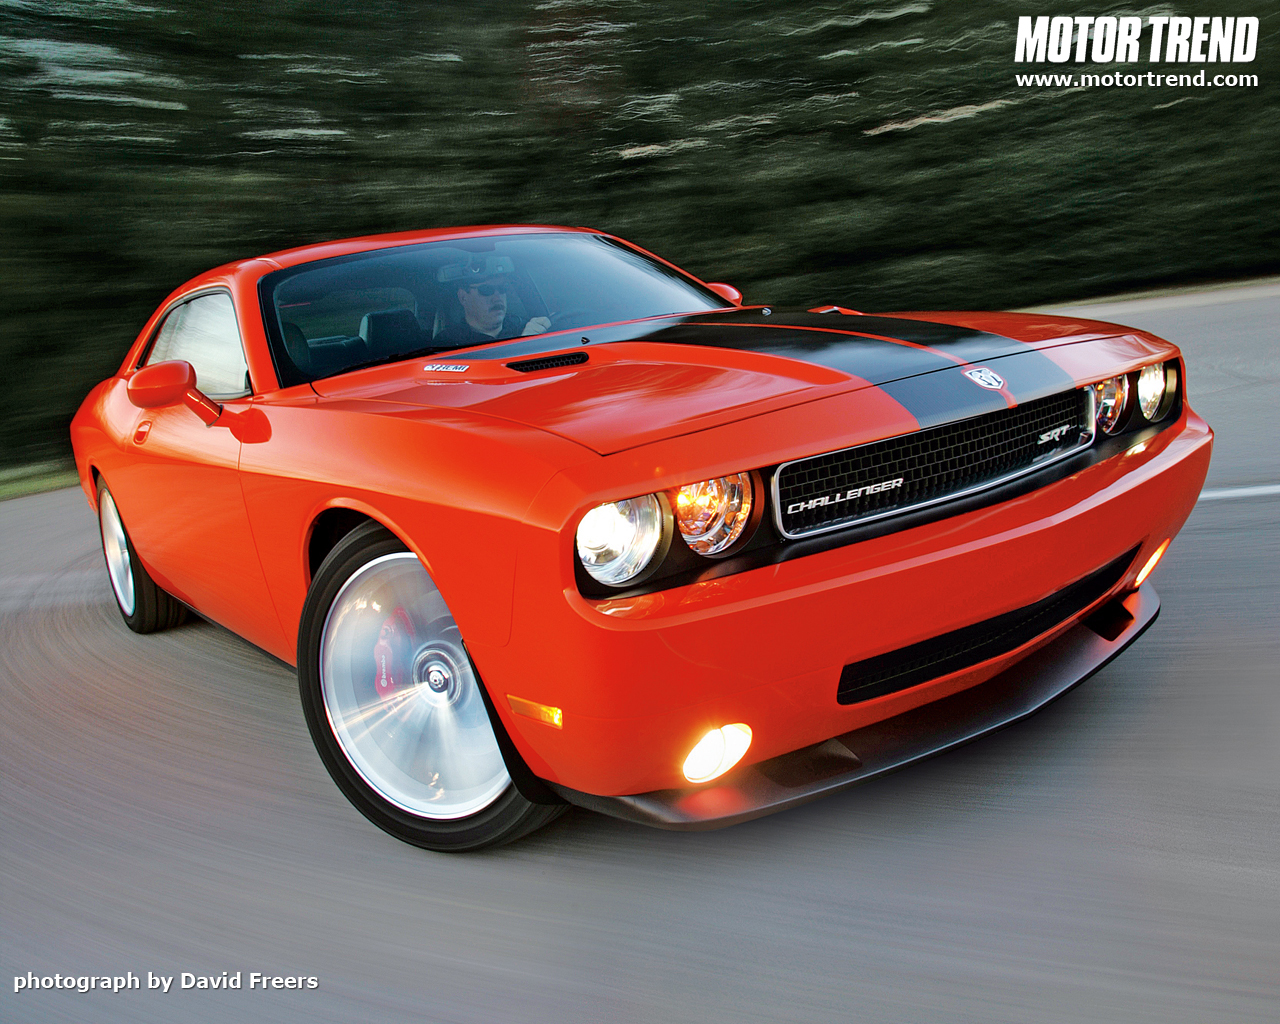 2008 Dodge Challenger SRT8   Wallpaper Gallery   Motor Trend 1280x1024